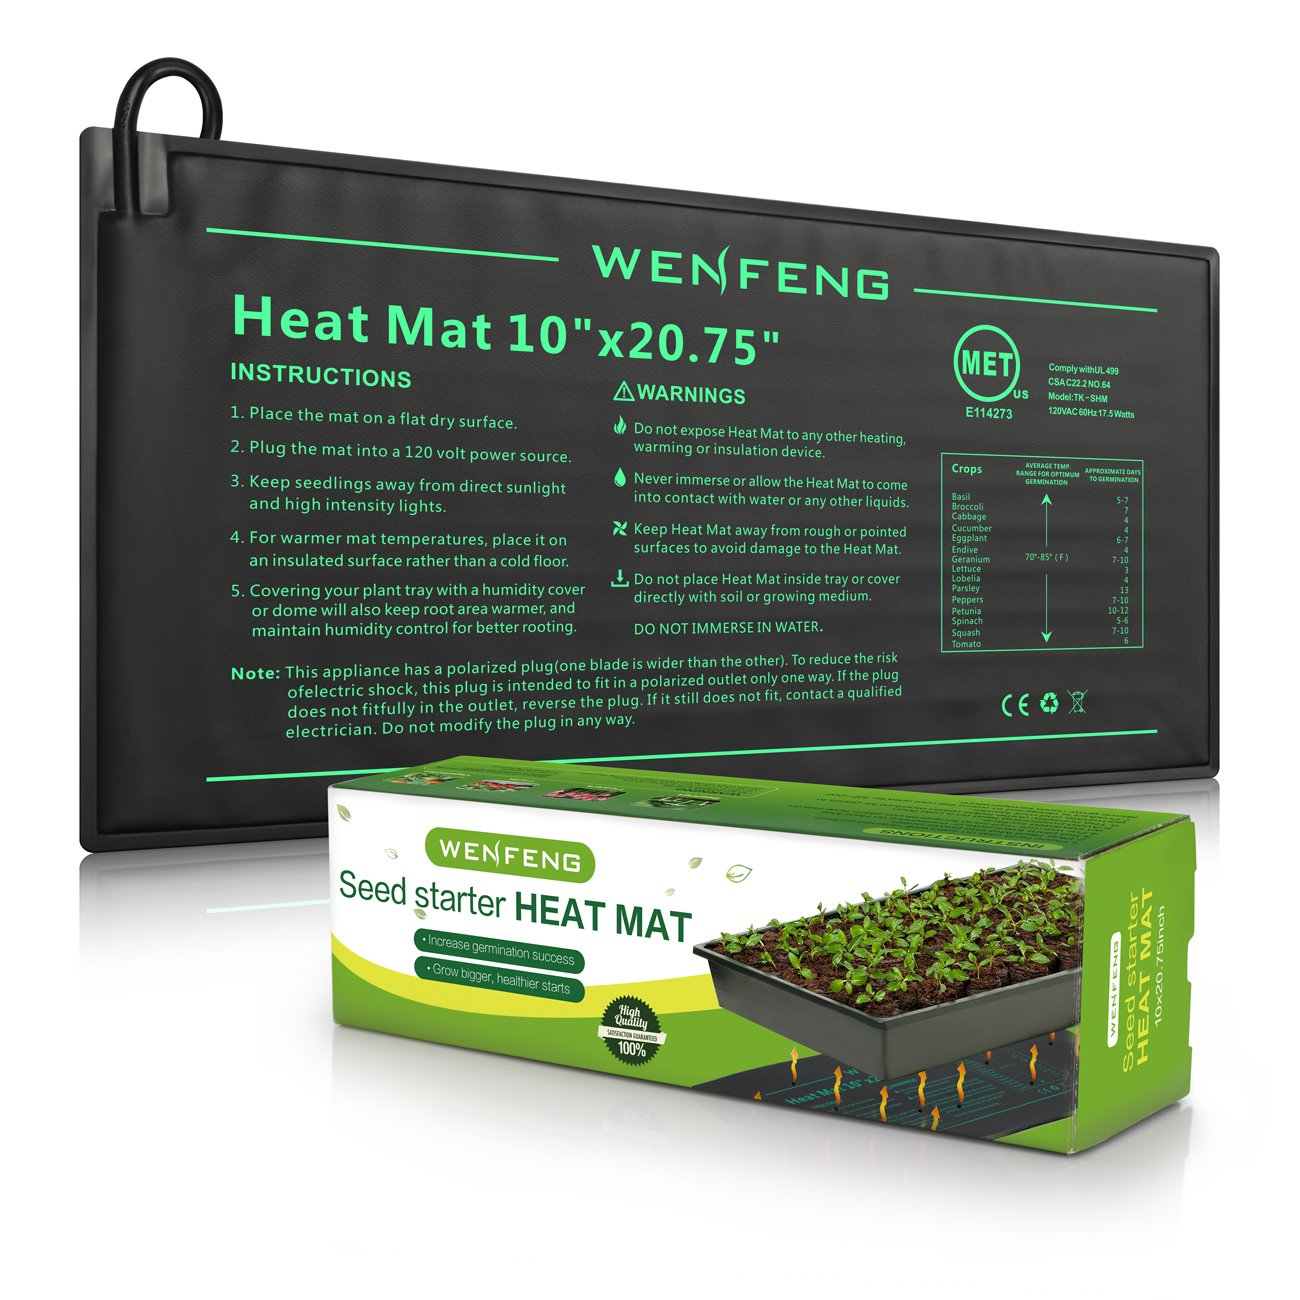 WENFENG Seeding Heat Mat 10 x 20.75 Warm Hydroponic Heating Pad for Indoor /& Outdoor Home Gardening Durable Waterproof Hydroponic Seeding Plant Mat